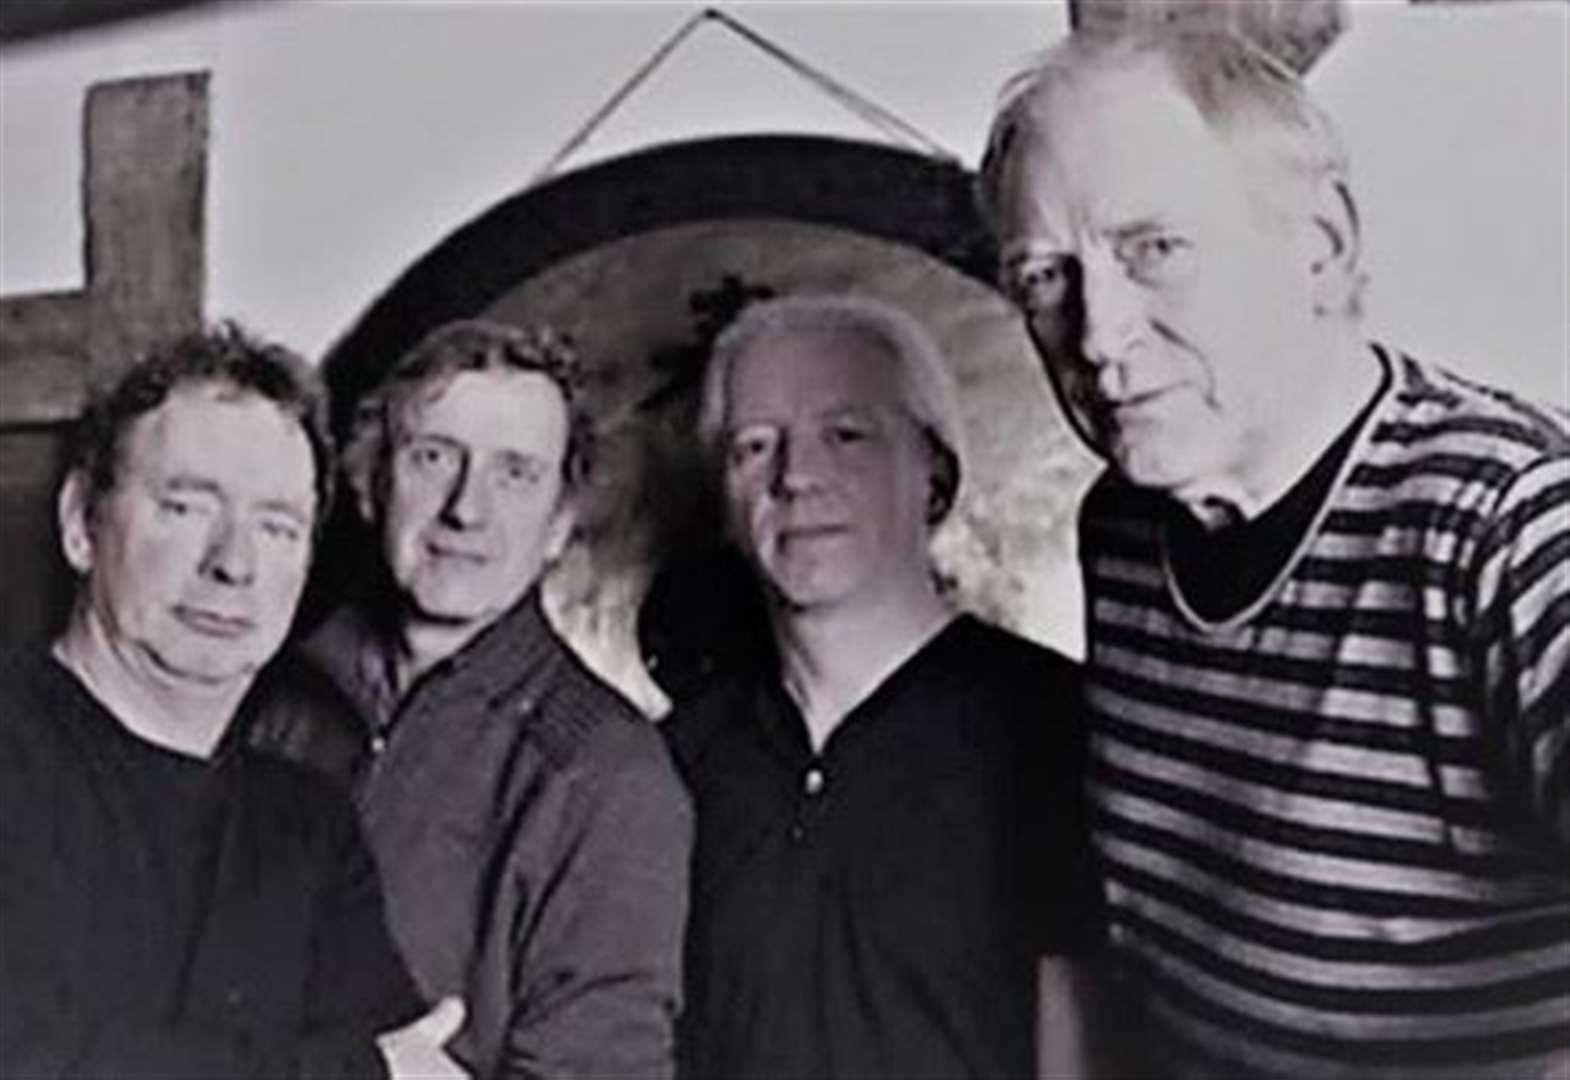 Stortford band that spawned 1980s chart act Shakatak re-form for Rhodes gig